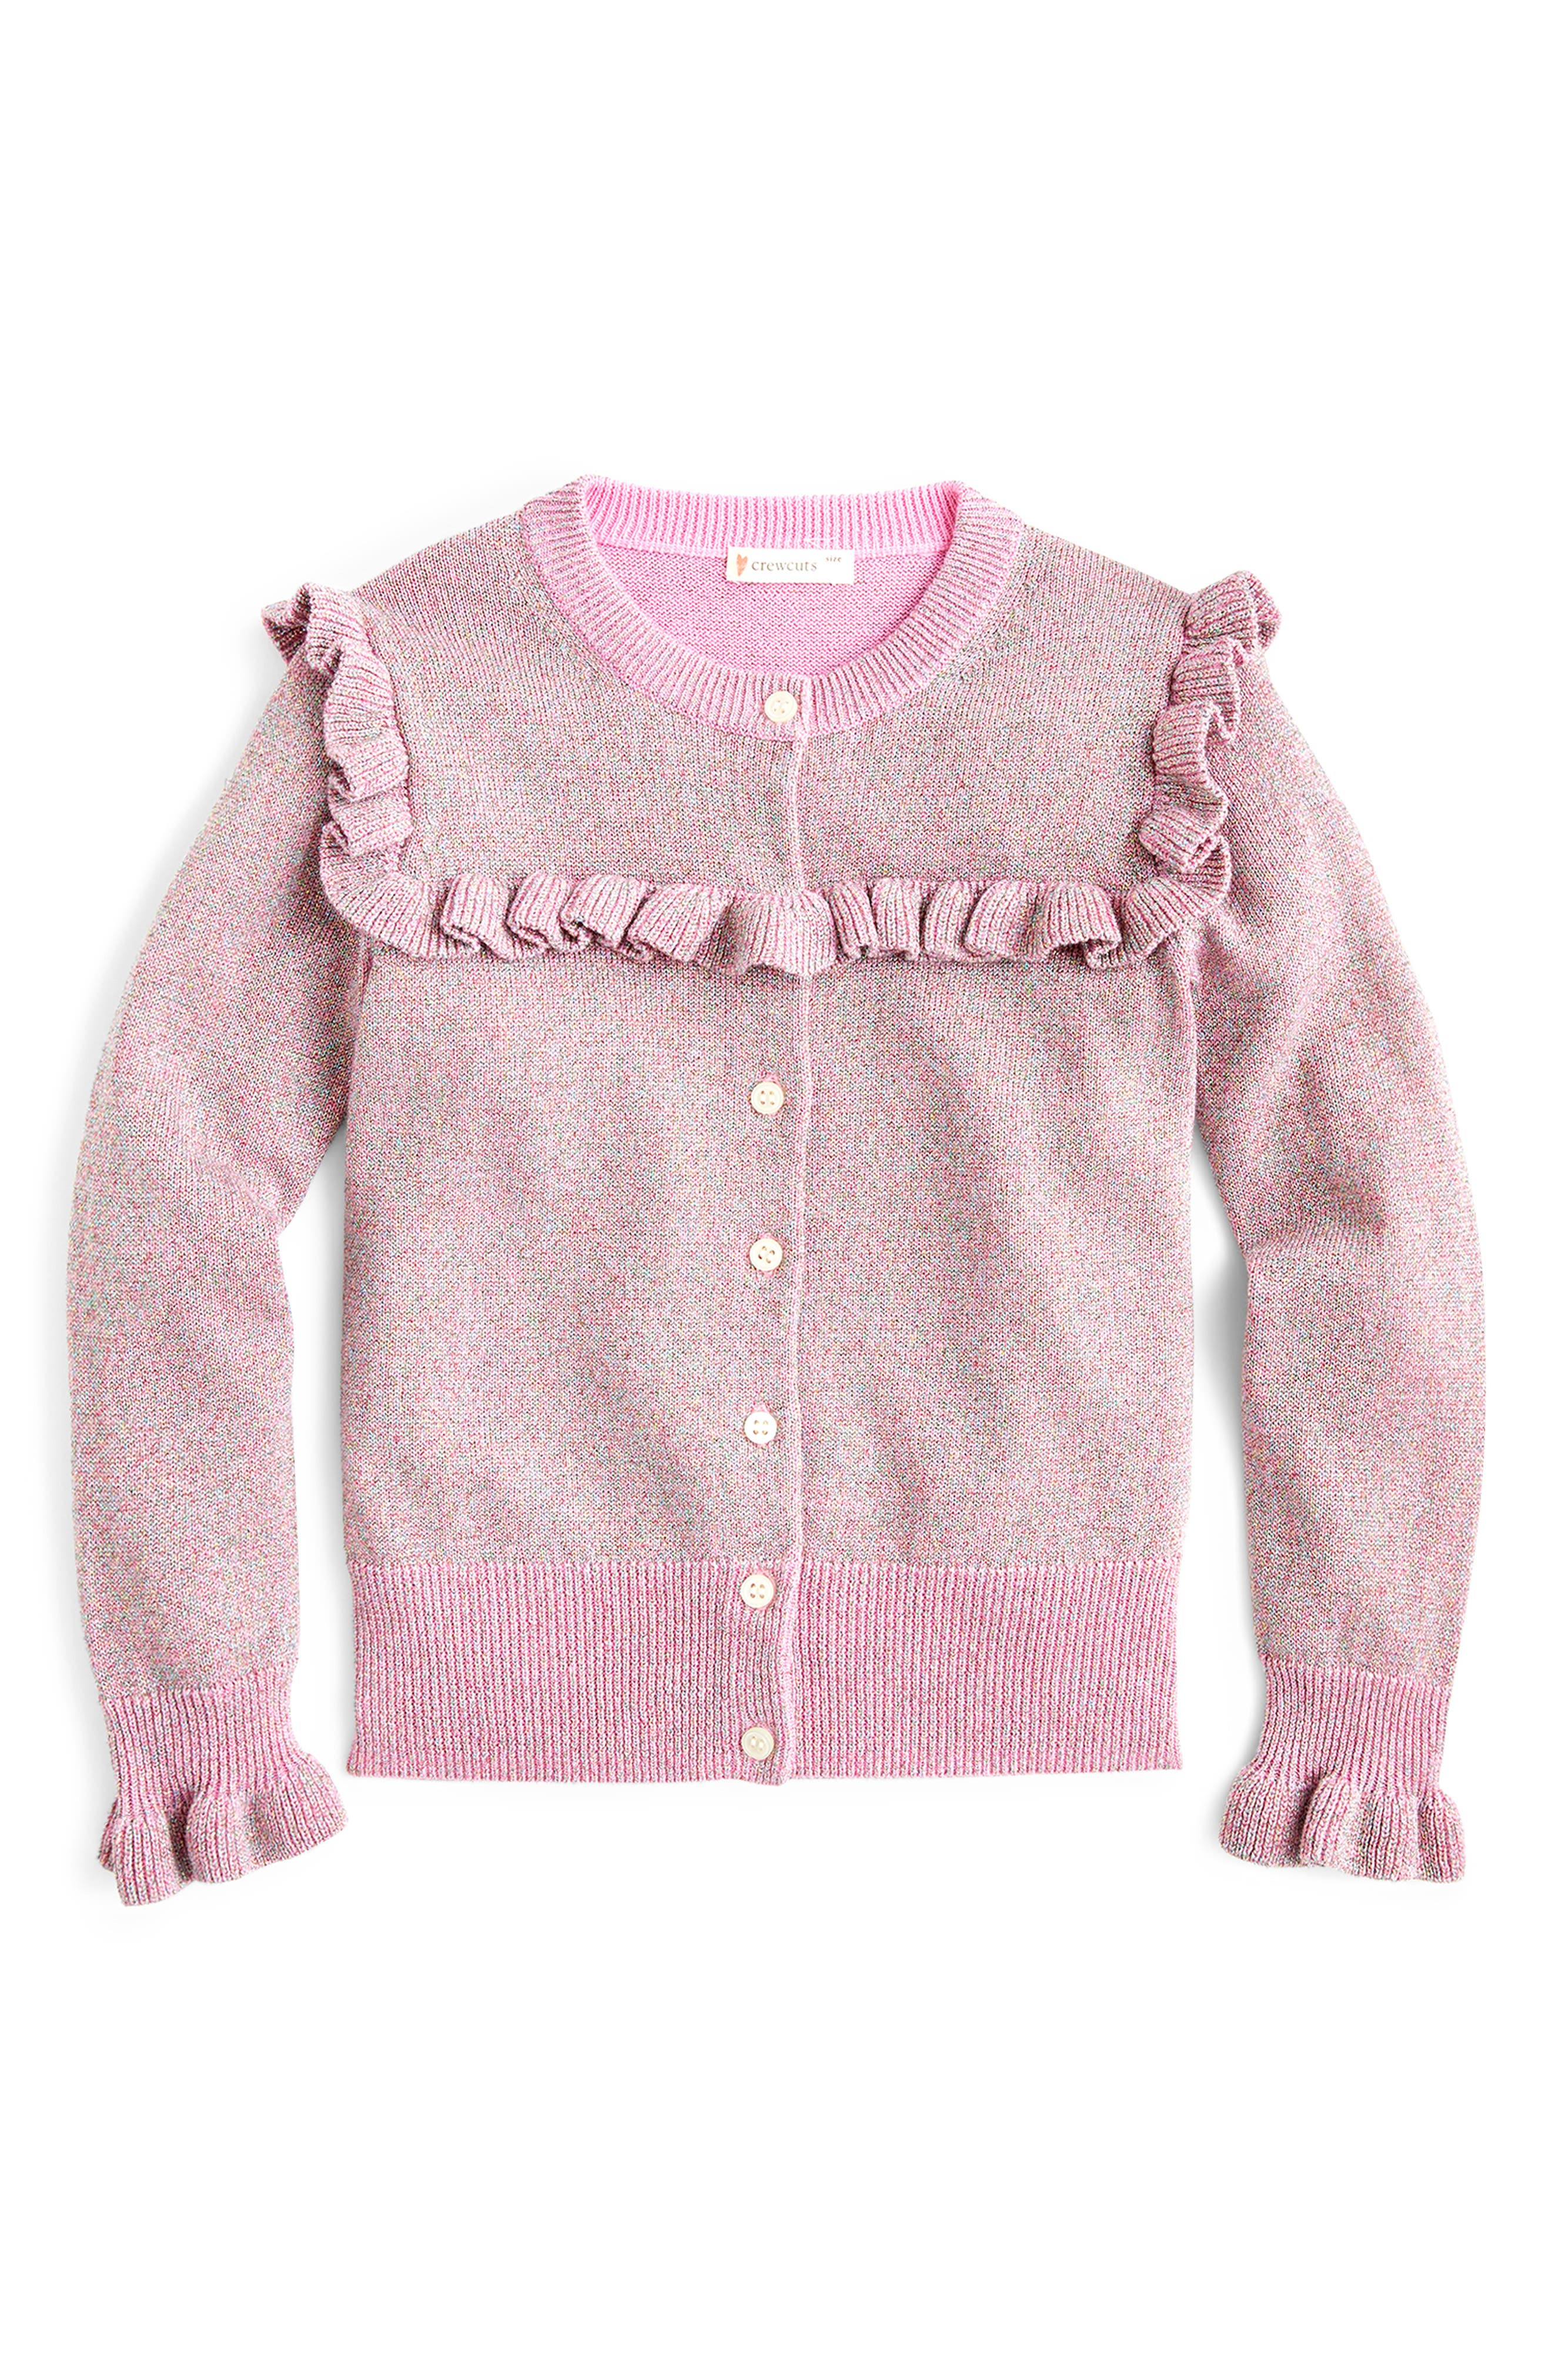 Toddler Girls Crewcuts By Jcrew Sparkly Ruffle Trimmed Cardigan Sweater Size 2T  Pink